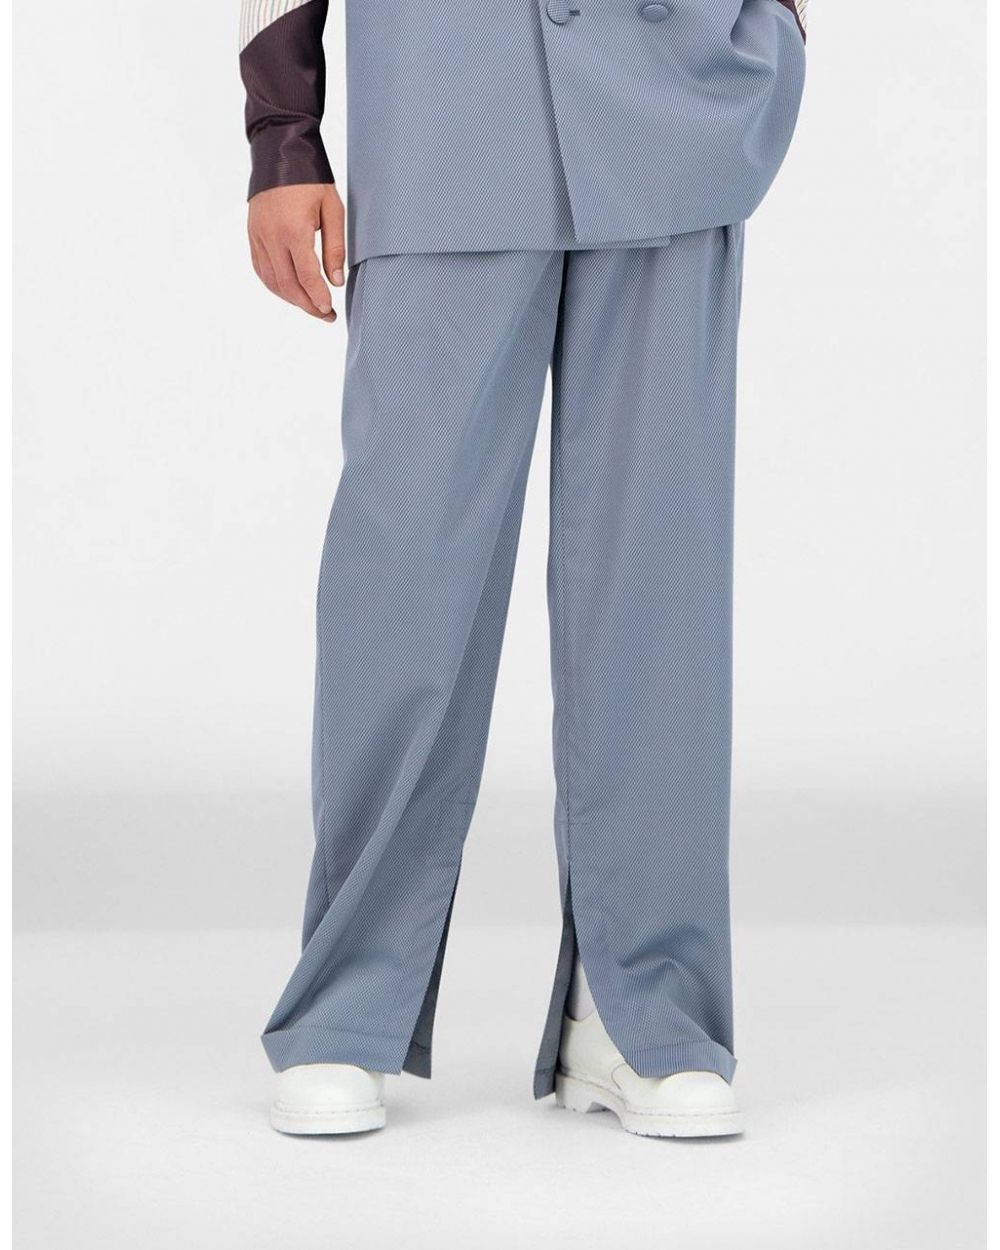 Daily Paper Johan pants - greyblue DAILY PAPER Pant 160,00 €